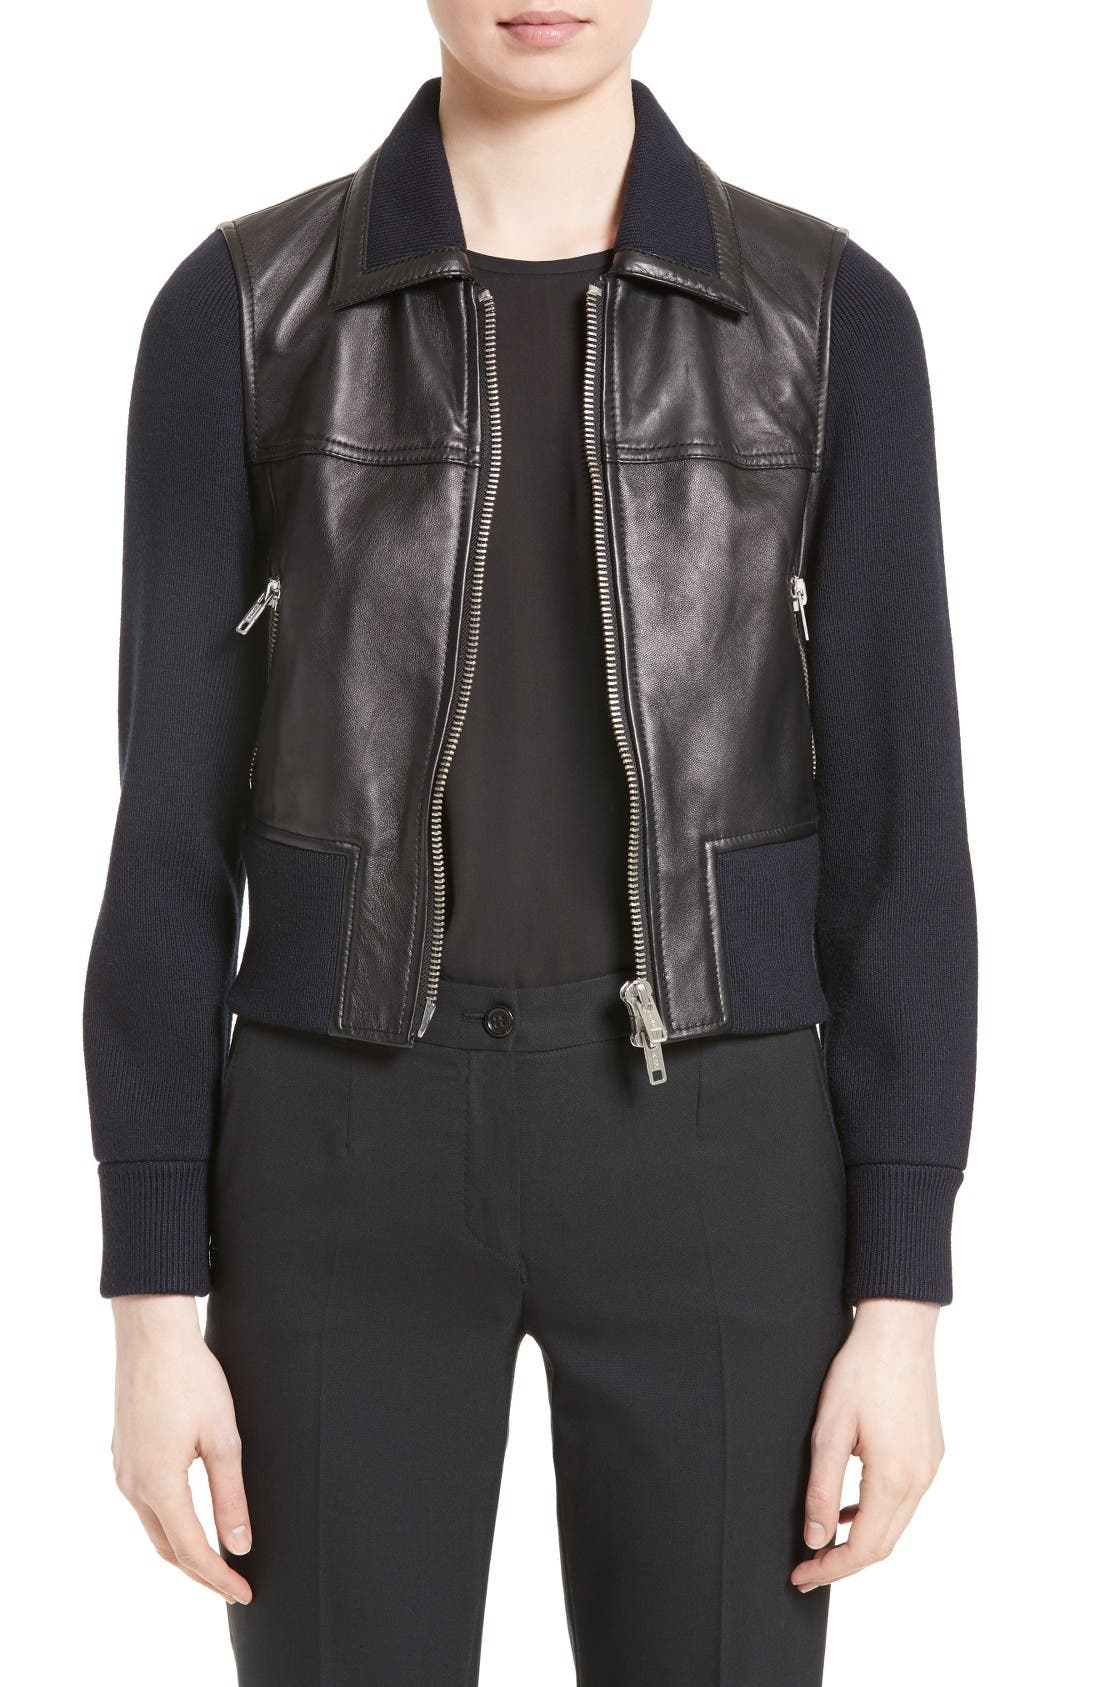 3.1 PHILLIP LIM Knit Combo Leather Jacket